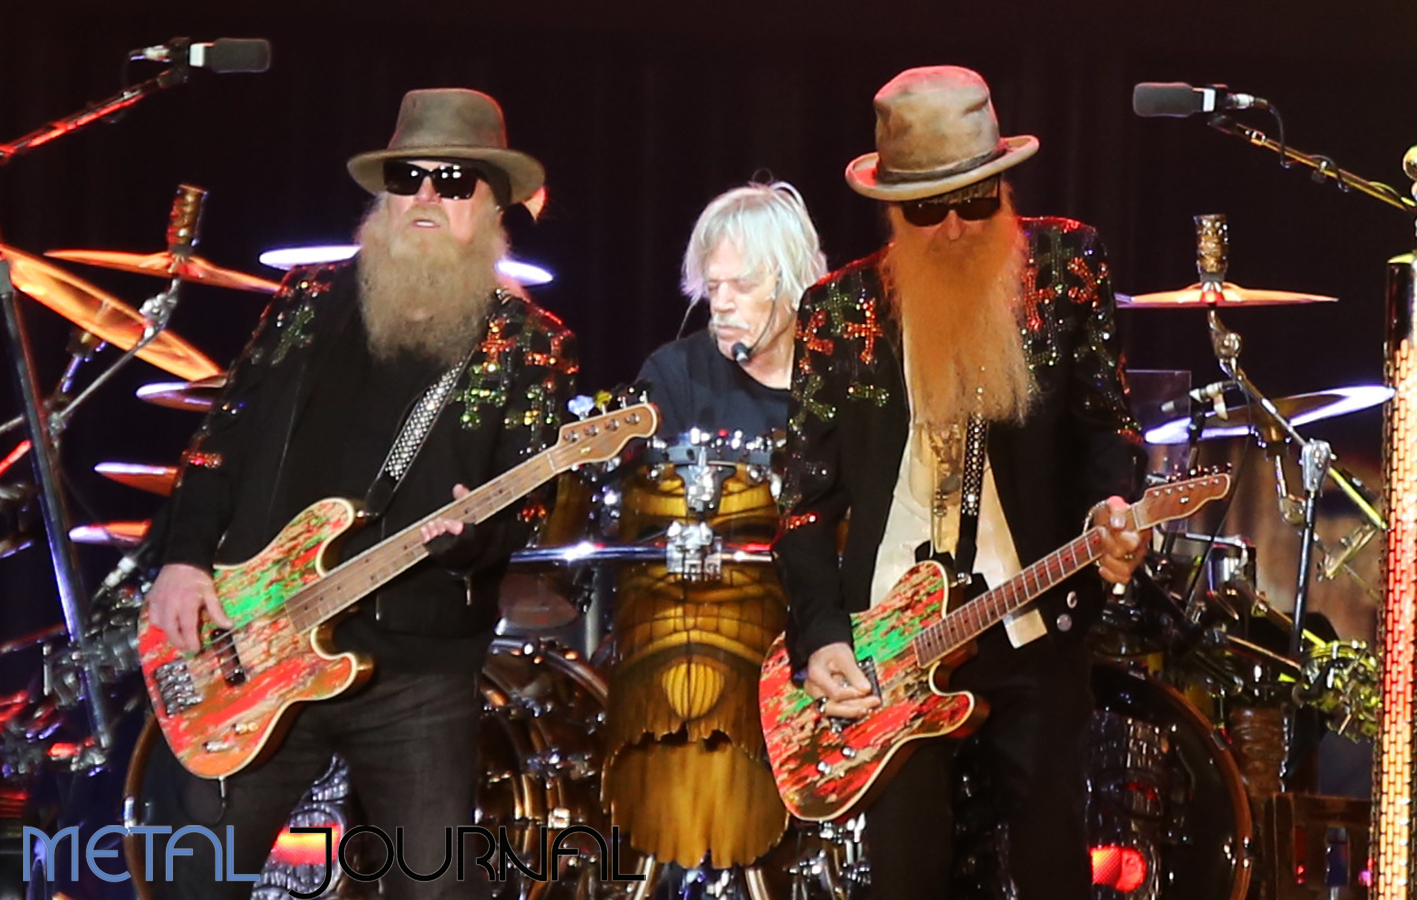 zz top- metal journal rock fest barcelona 2019 pic 8